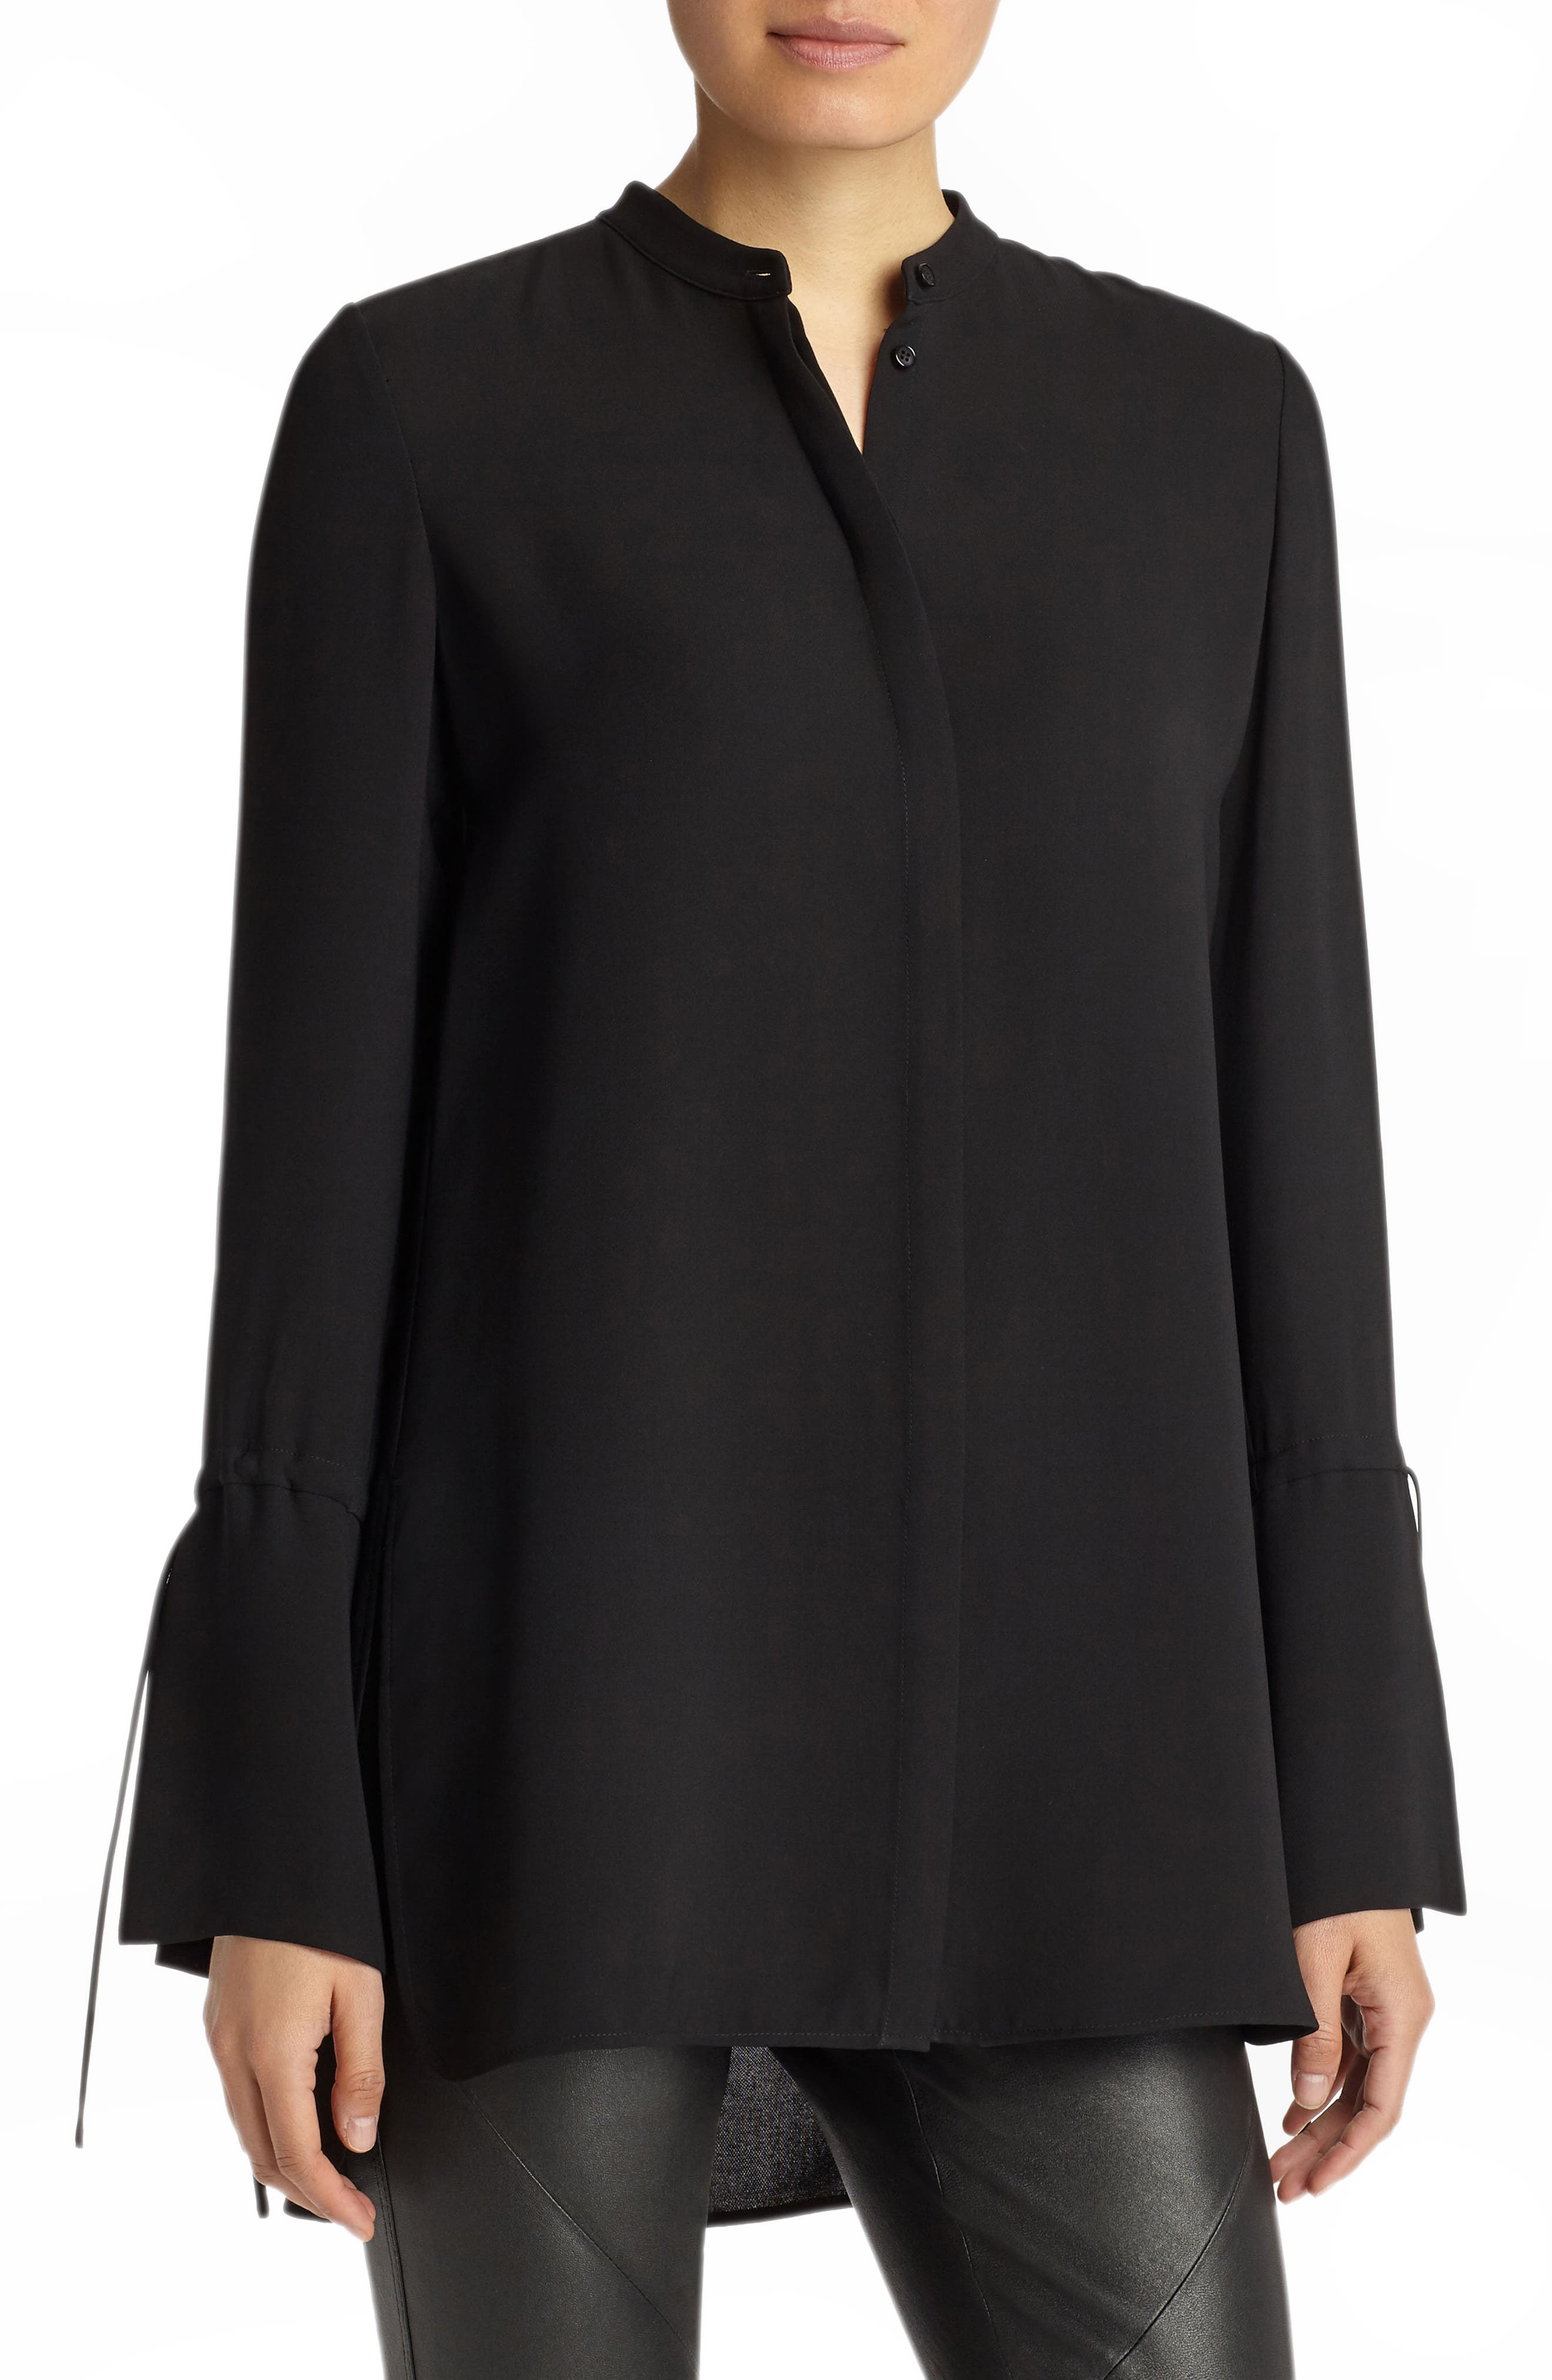 Desra Silk Blouse,                         Main,                         color, Black